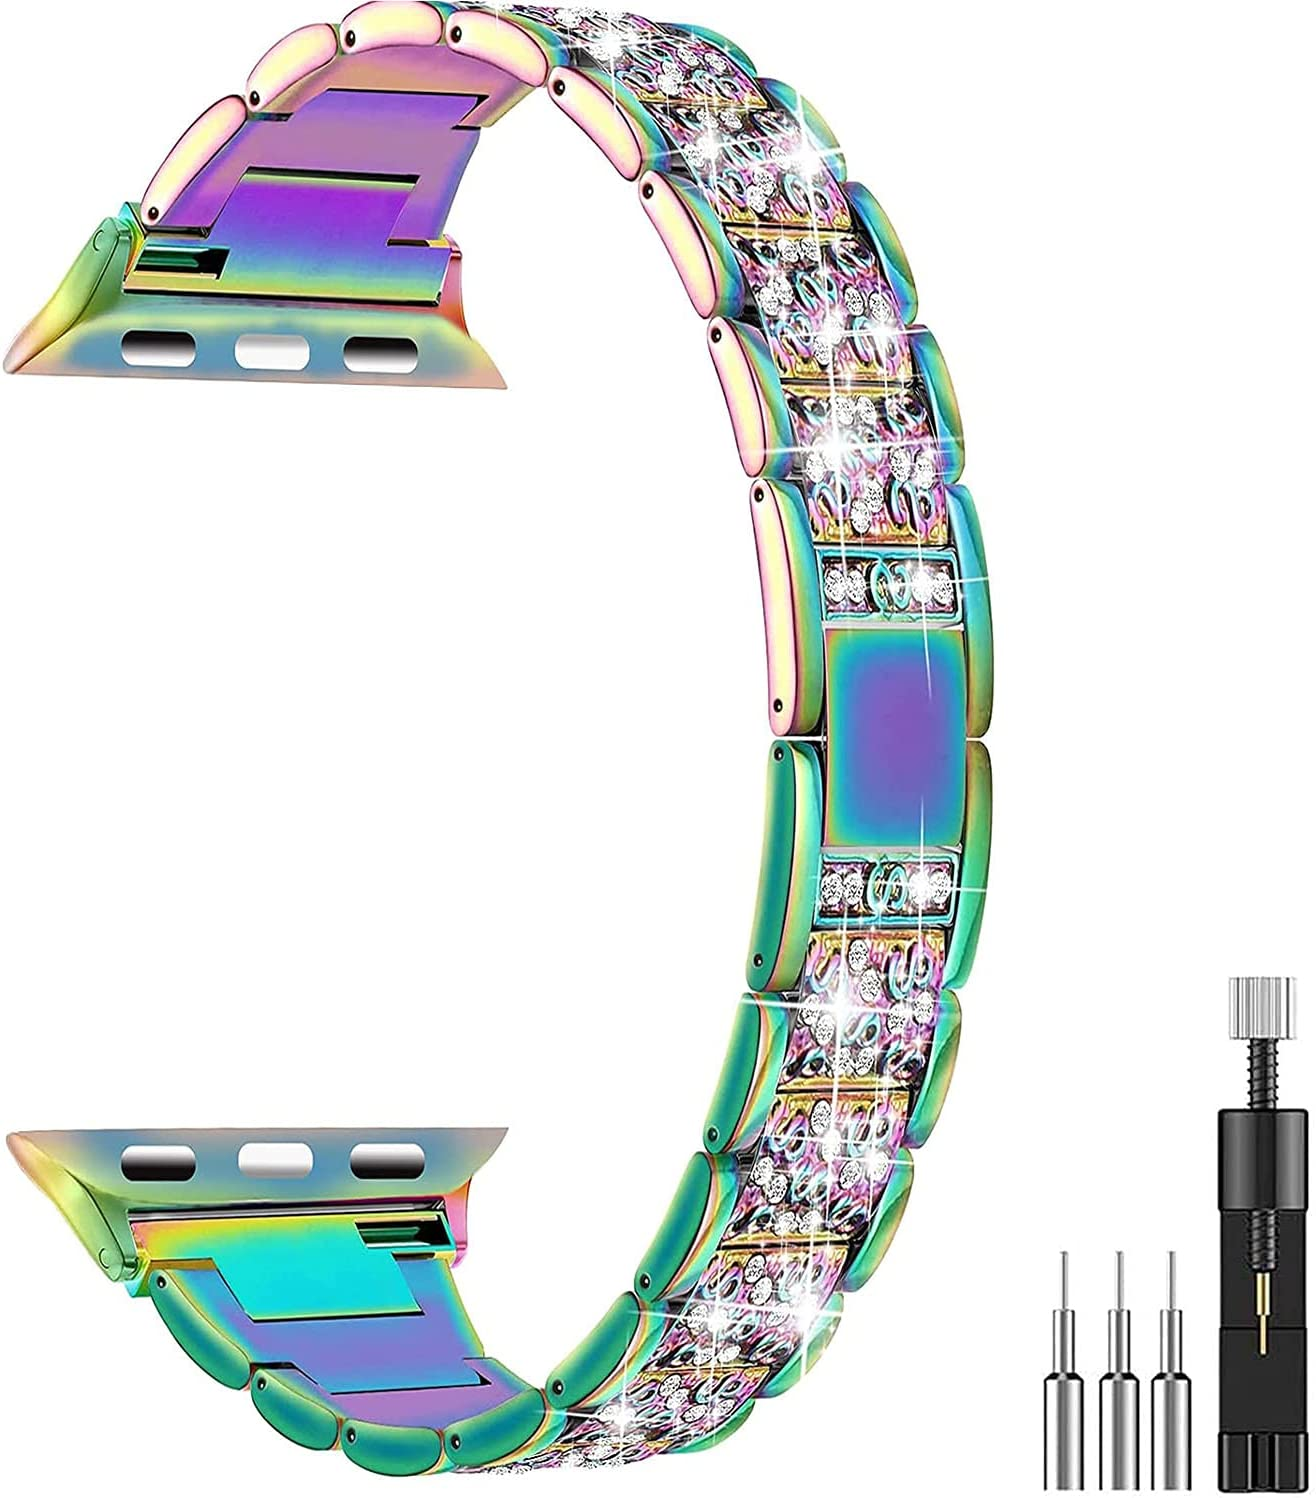 Mangoton Bling Bands Compatible for Apple Watch Band 42mm 44mm, Diamond Watch Strap for Series 6/5/4/3/2/1/SE, Rhinestone Stainless Steel Metal Wristband Strap iWatch Bands for Women (Colorful)